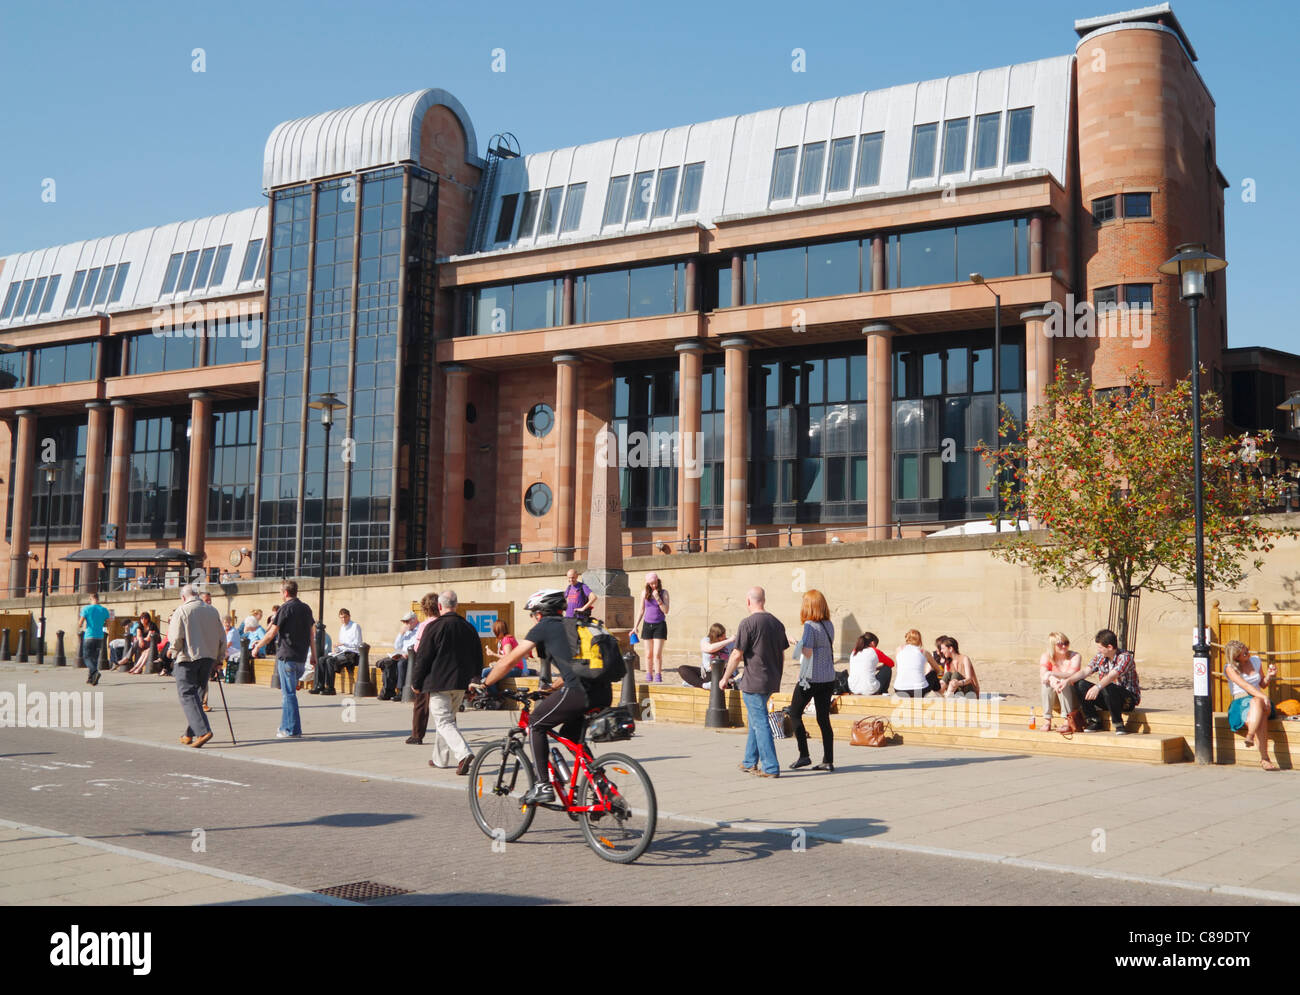 Combined Law courts (Crown court) building, Newcastle upon Tyne, England, UK - Stock Image